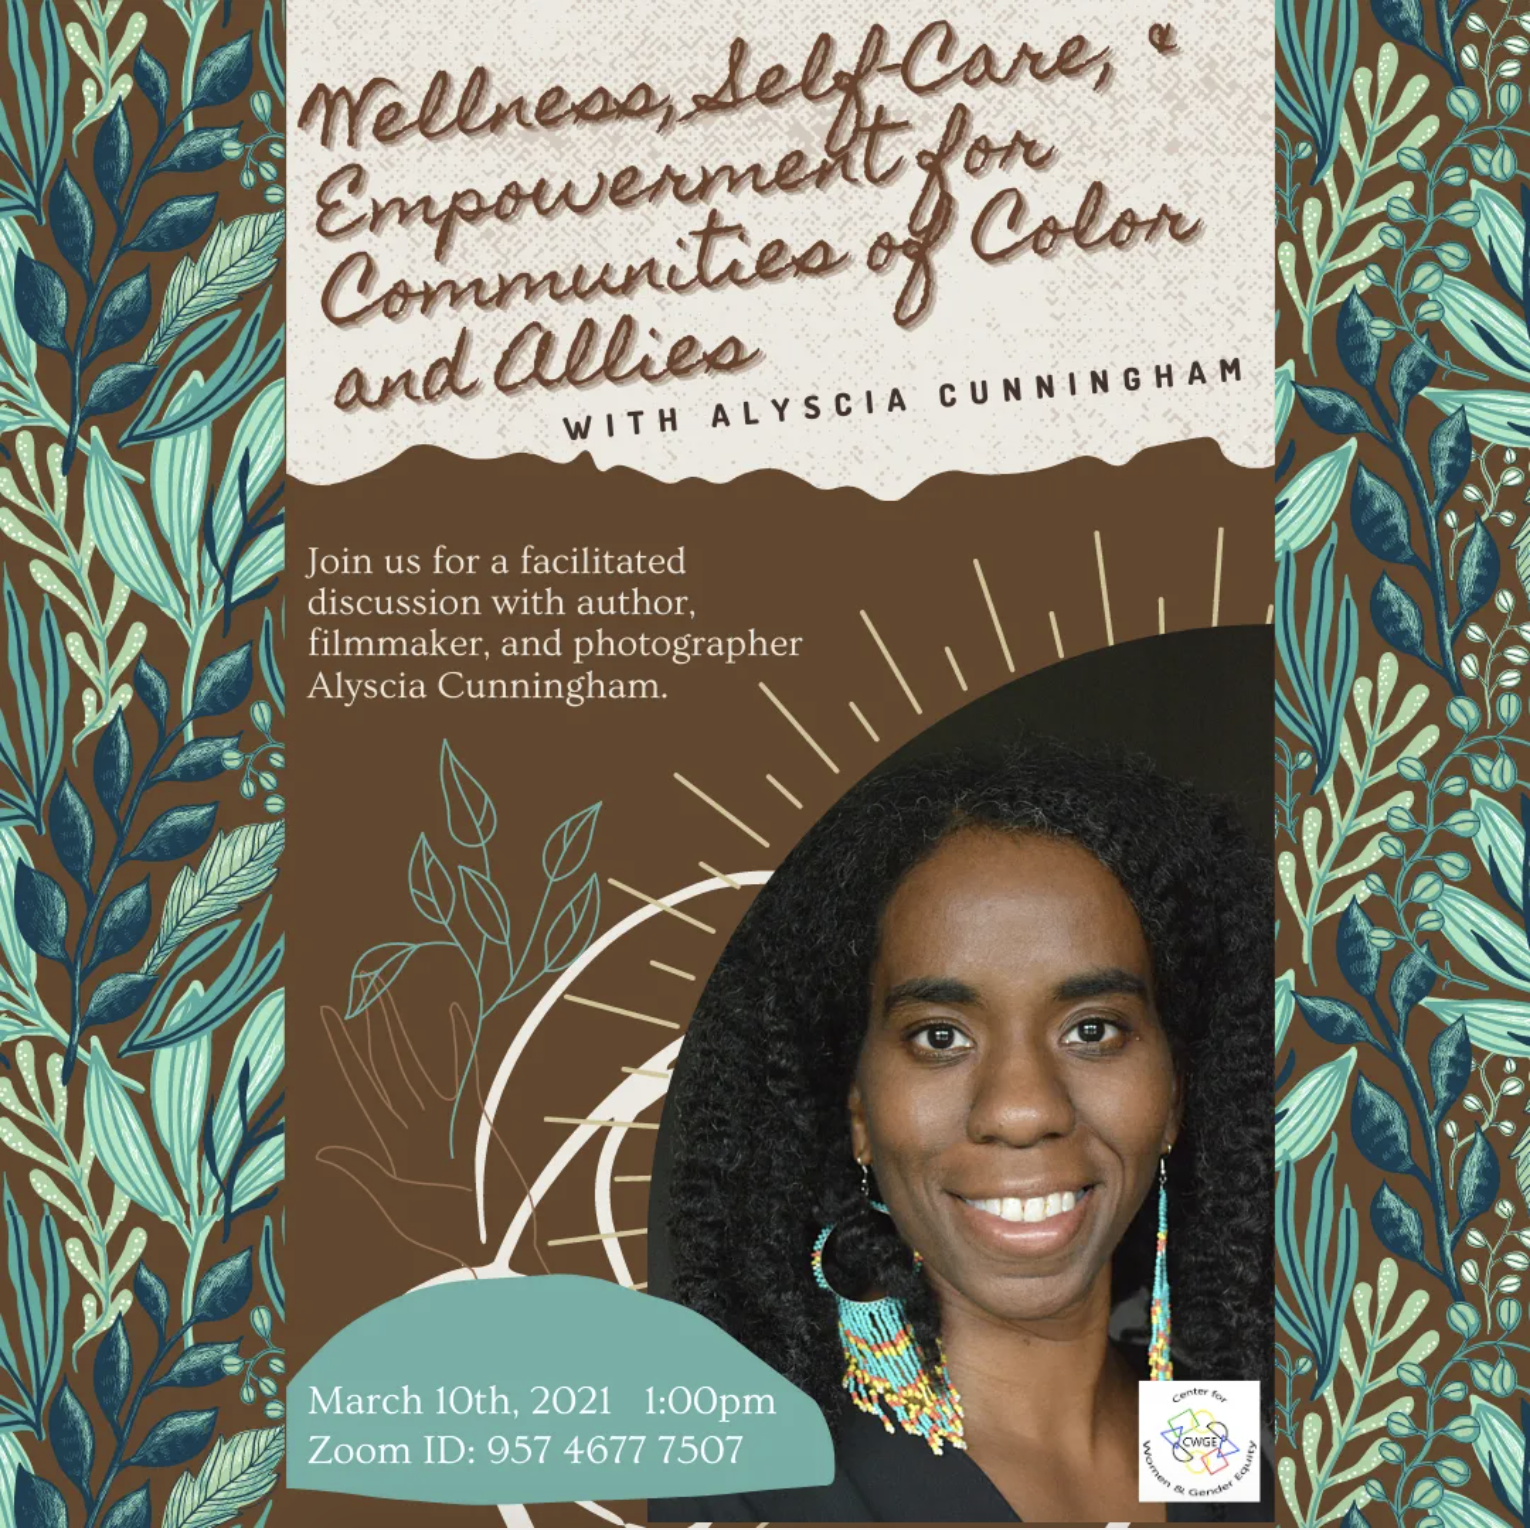 Wellness, Self Care & Empowerment For Communities of Color and Allies Facilitated Discussion by Alyscia Cunningham, Author, Filmmaker & Photographer